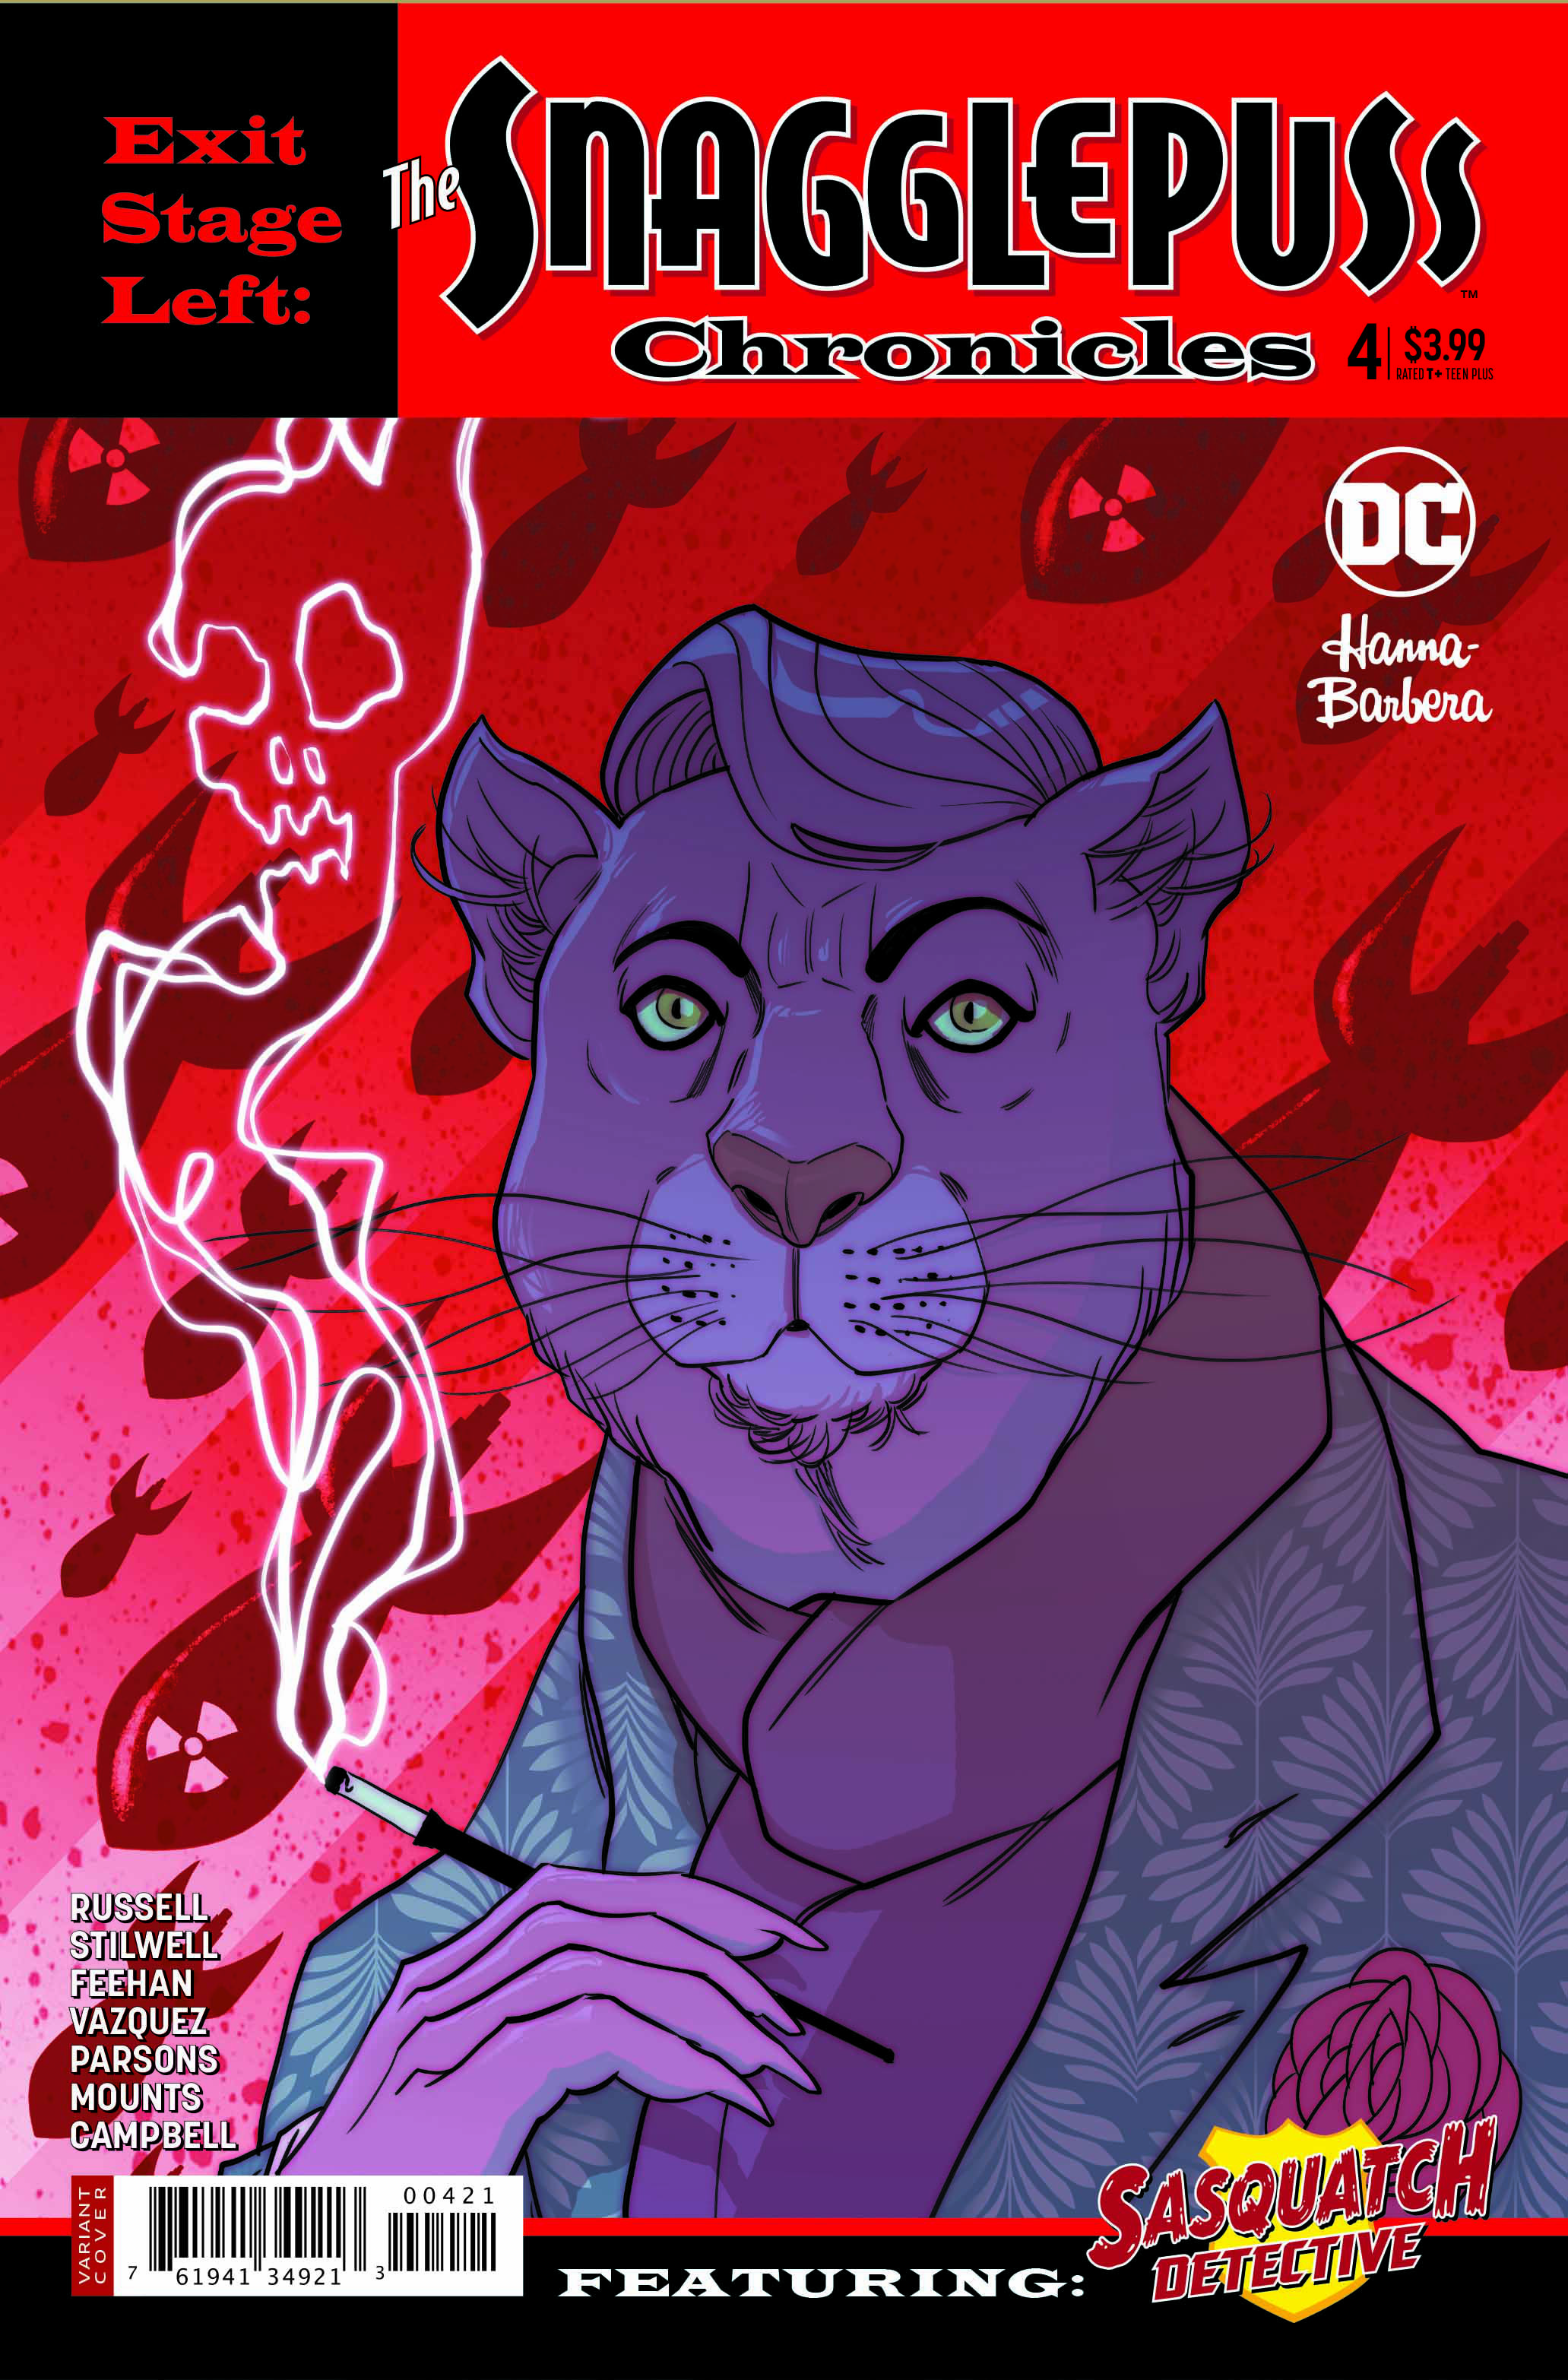 Snagglepuss Chronicles #4 variant cover